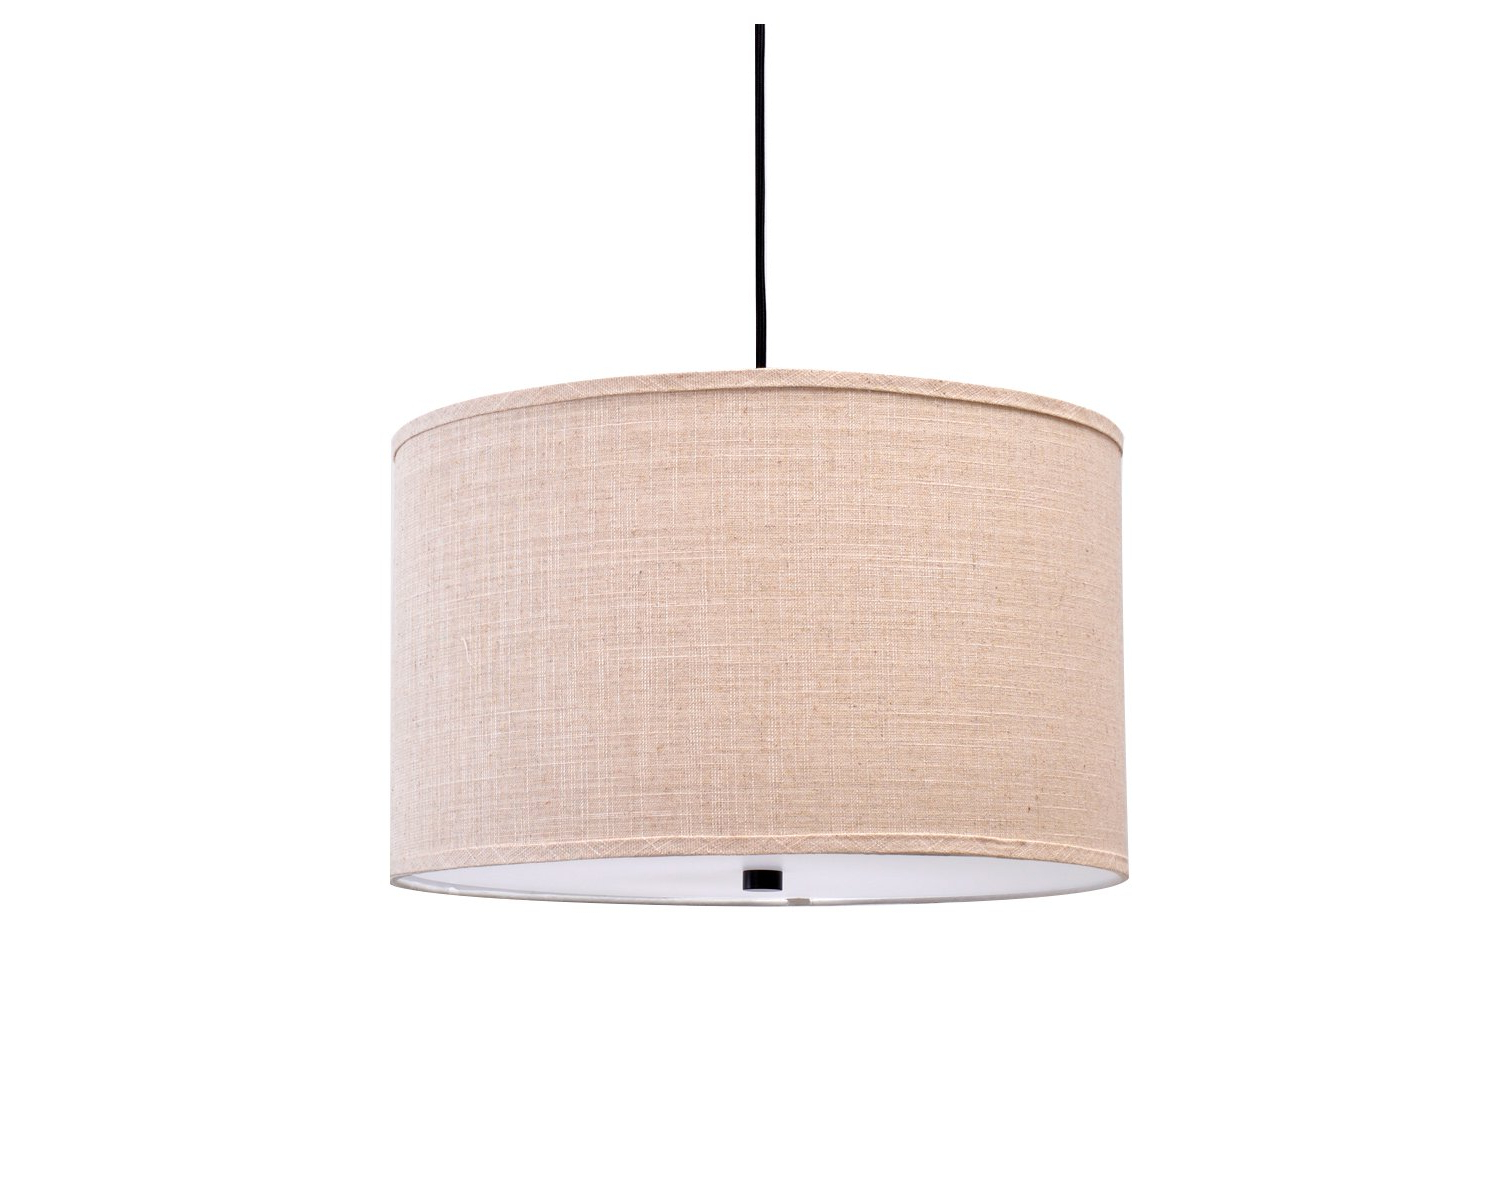 Catalina Lighting 19867 001 Traditional 3 Fabric Pendant Ceiling Light With  Diffuser On Bottom, 18 Inch, Bronze With Fashionable Kasey 3 Light Single Drum Pendants (View 18 of 25)